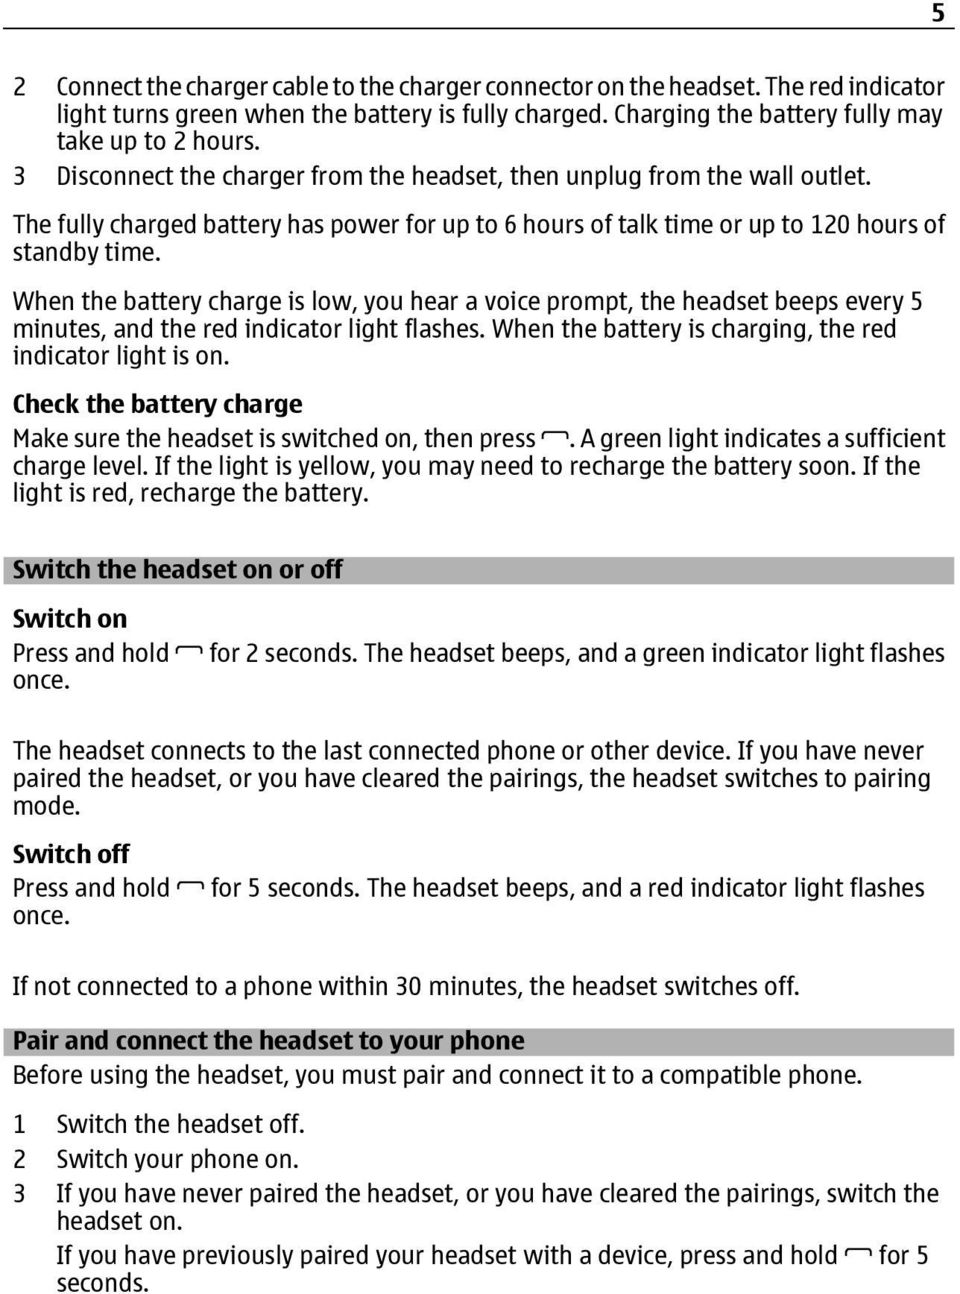 When the battery charge is low, you hear a voice prompt, the headset beeps every 5 minutes, and the red indicator light flashes. When the battery is charging, the red indicator light is on.